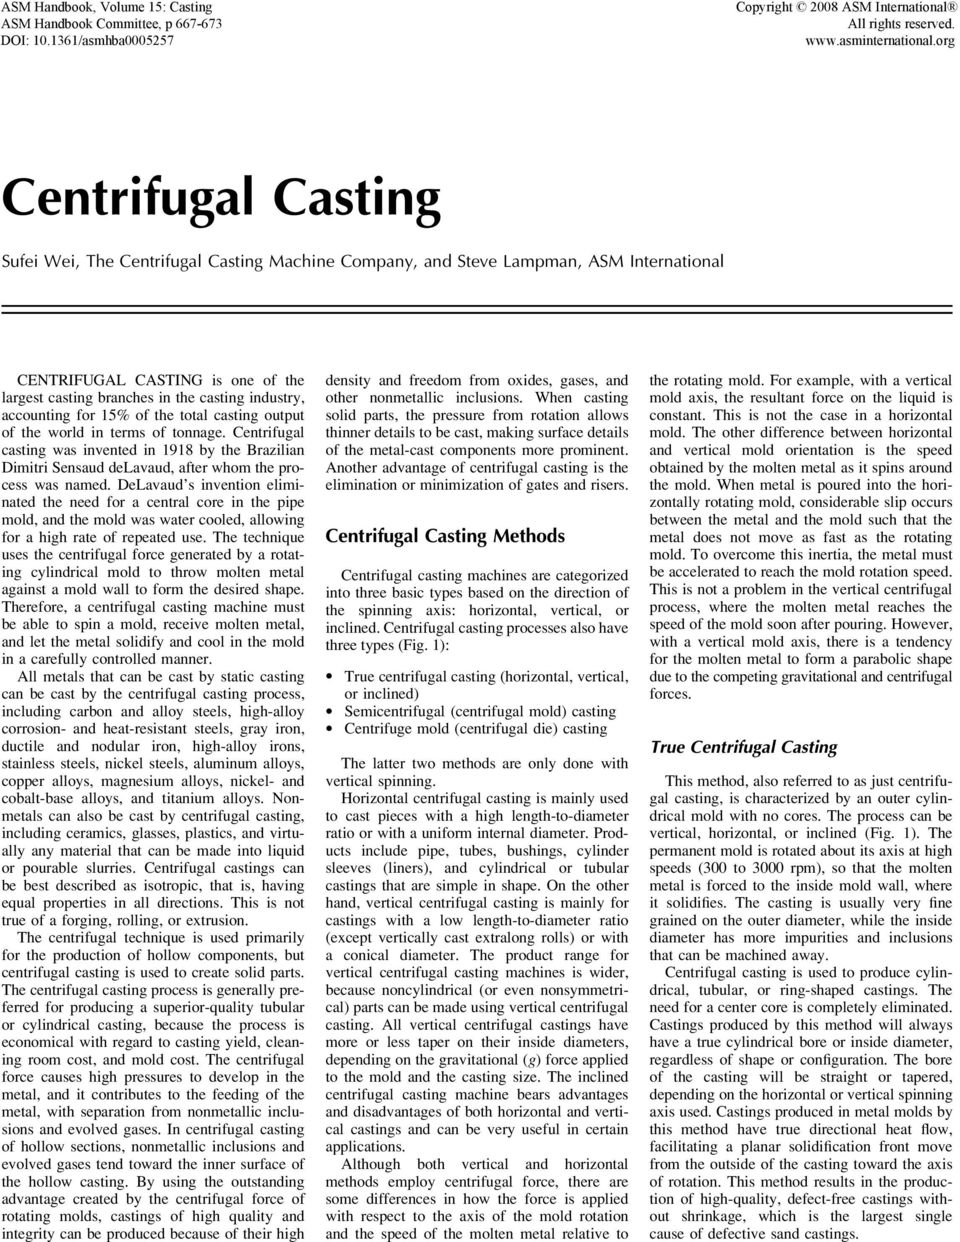 Sufei Wei, The Centrifugal Casting Machine Company, and